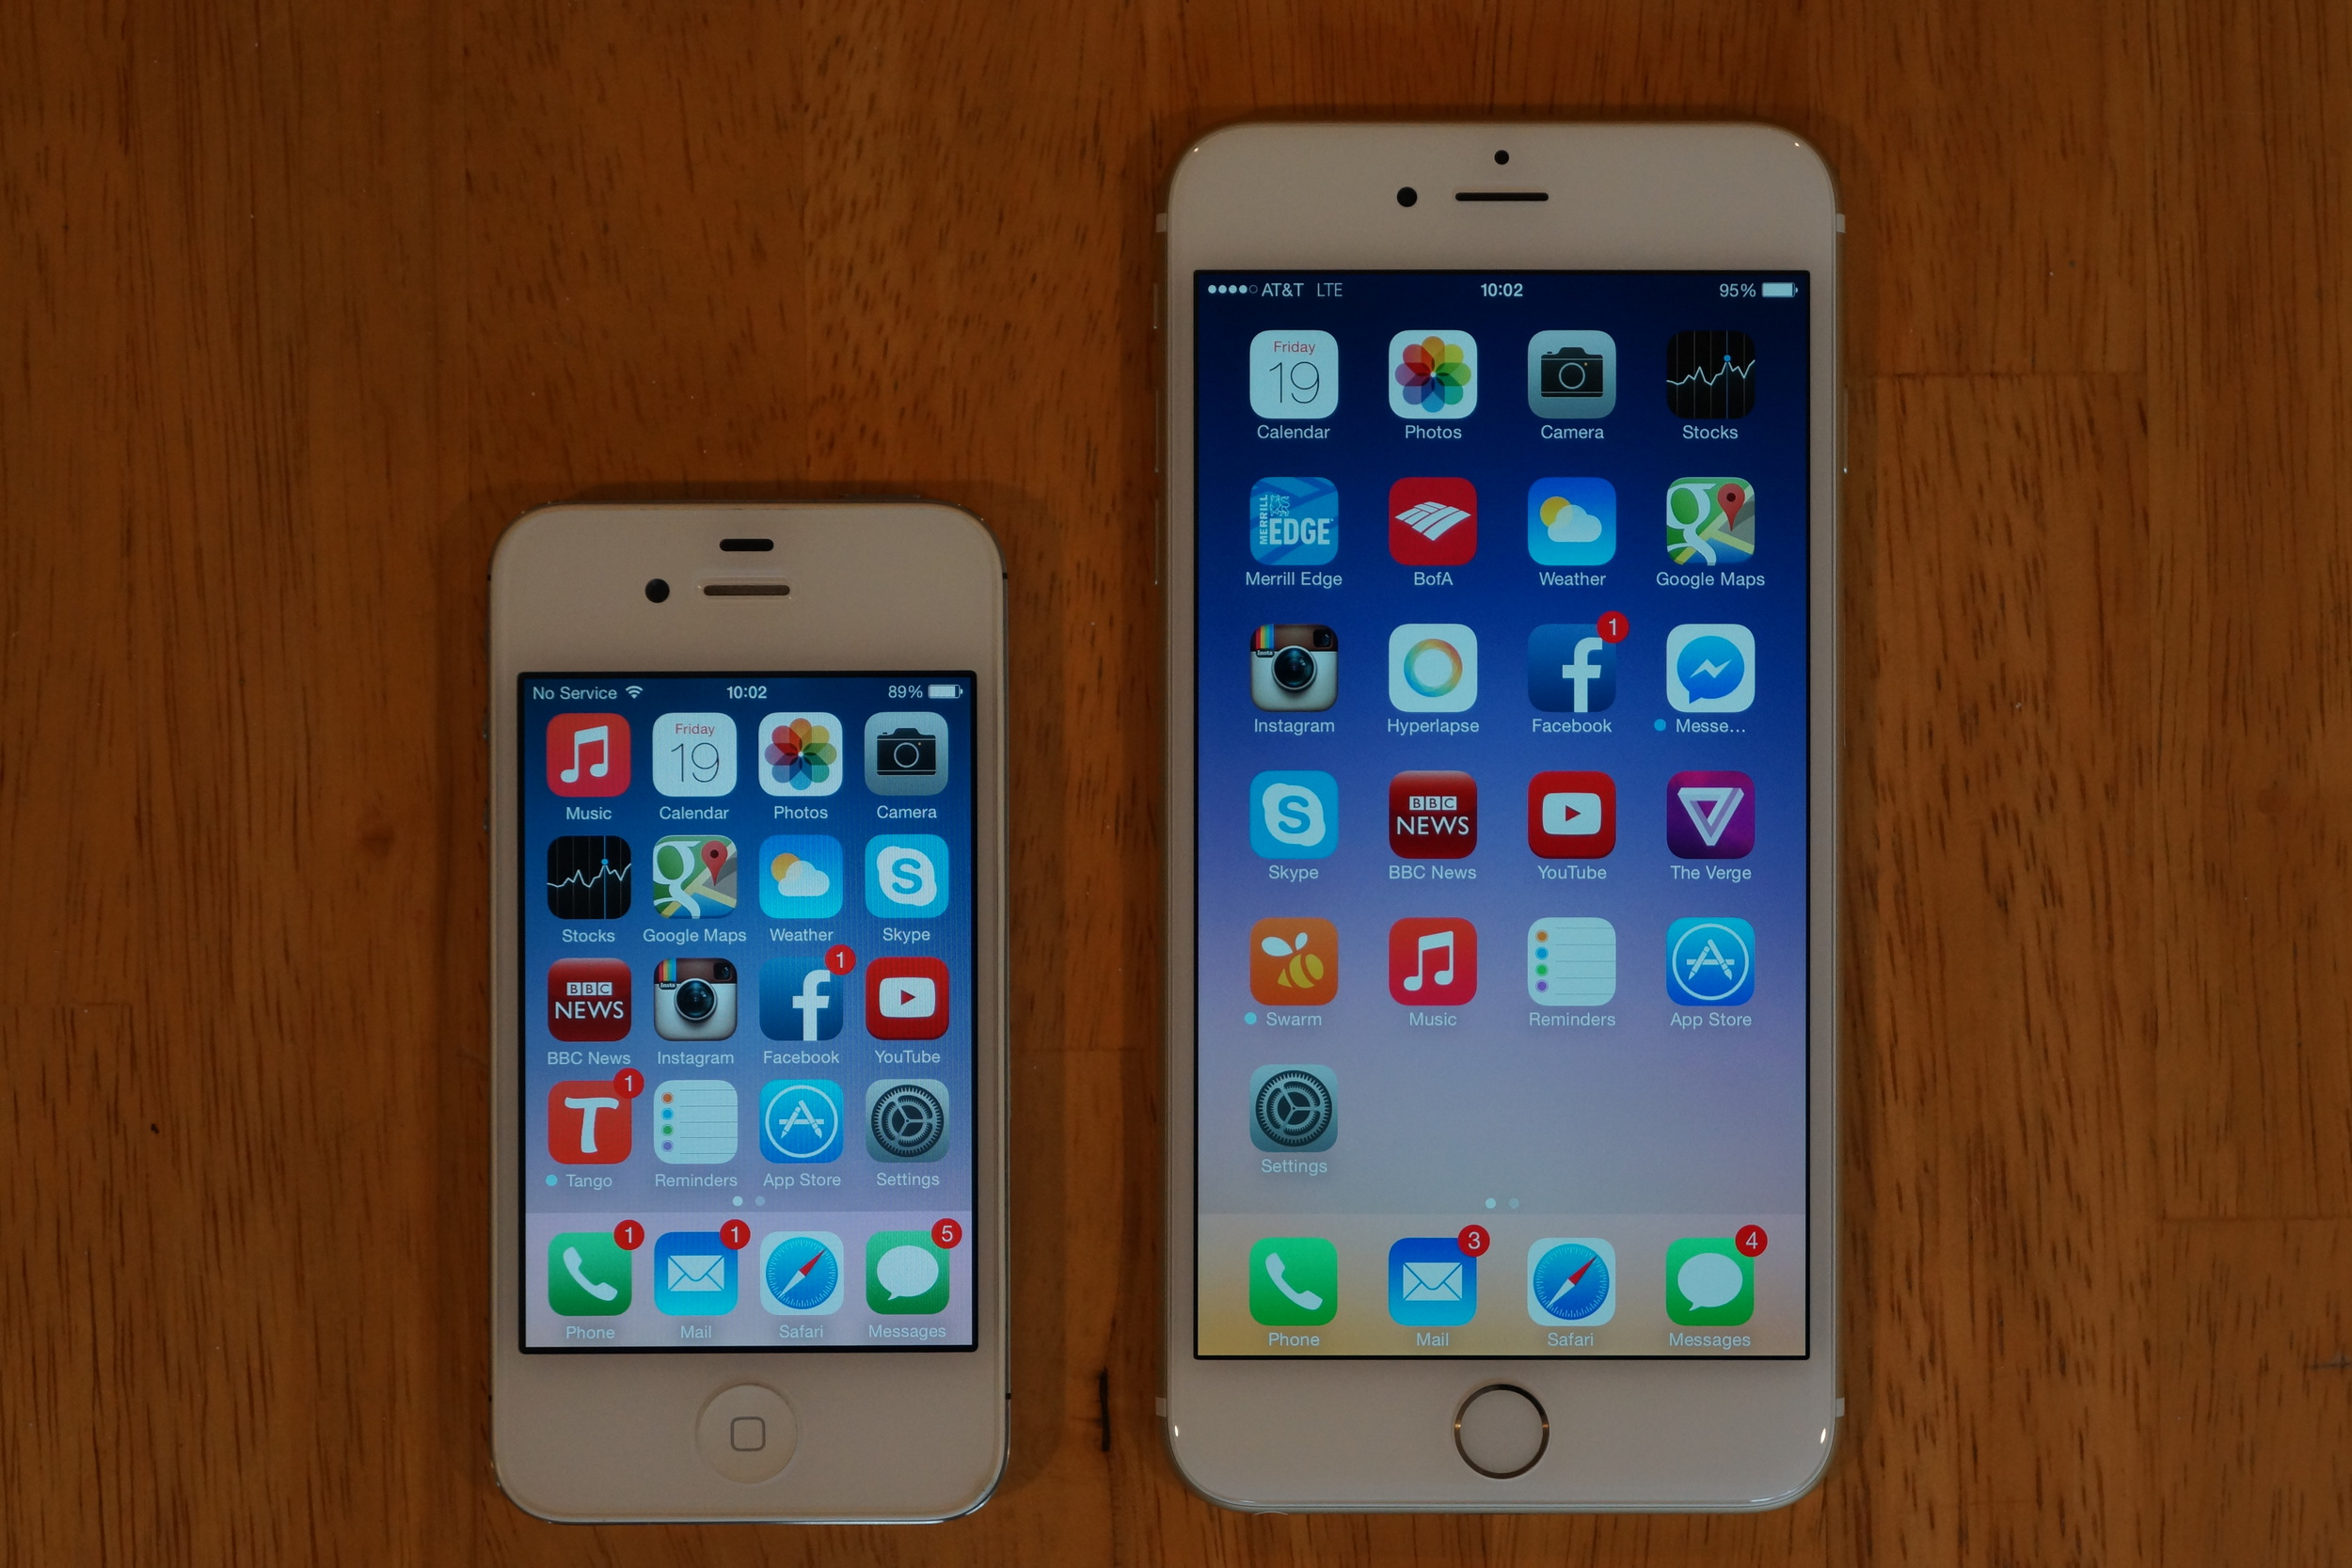 iPhone 6 Plus alongside a 4S. Both the 6 and 6 Plus add an additional row of icons to the 5/5S's five. iPhone 4 = 4 rows, iPhone 5 = 5 rows, iPhone 6 = 6 rows, iPhone 7 = 7 rows?